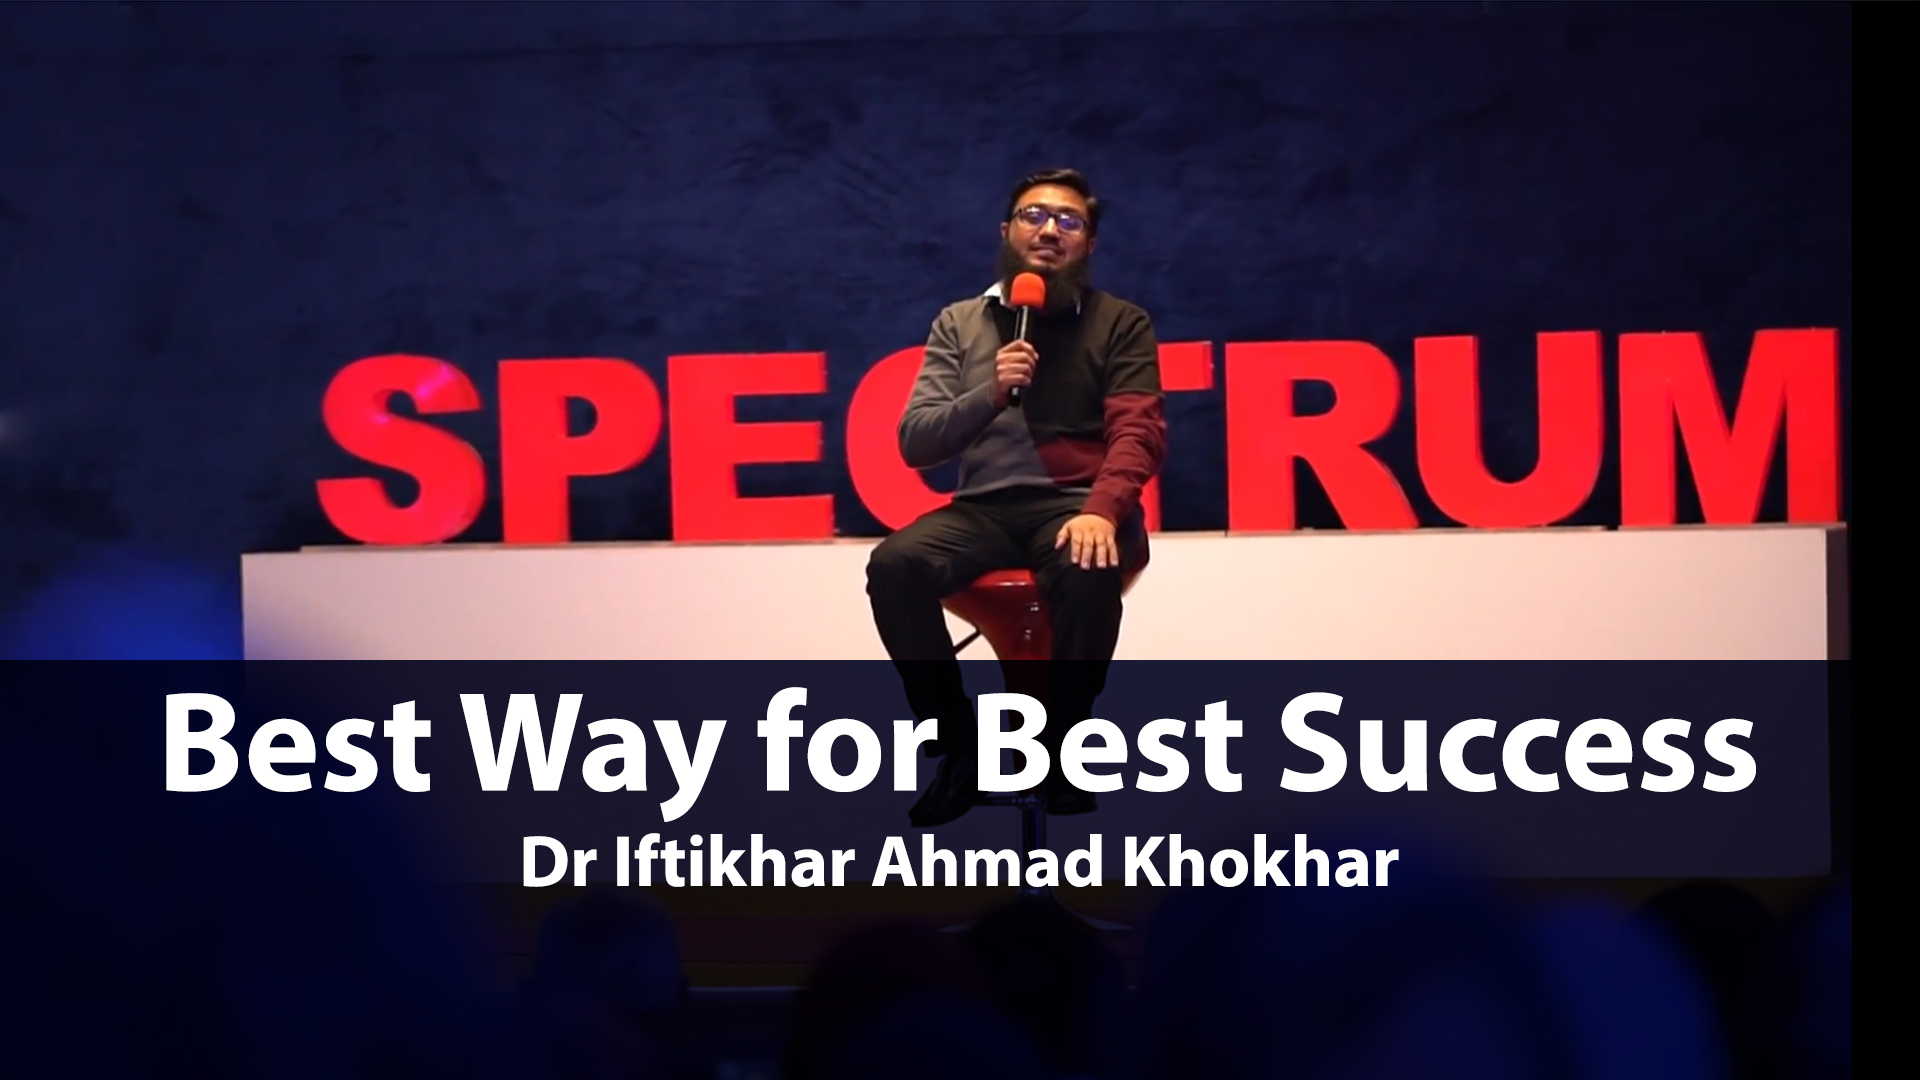 Best Way for Best Success